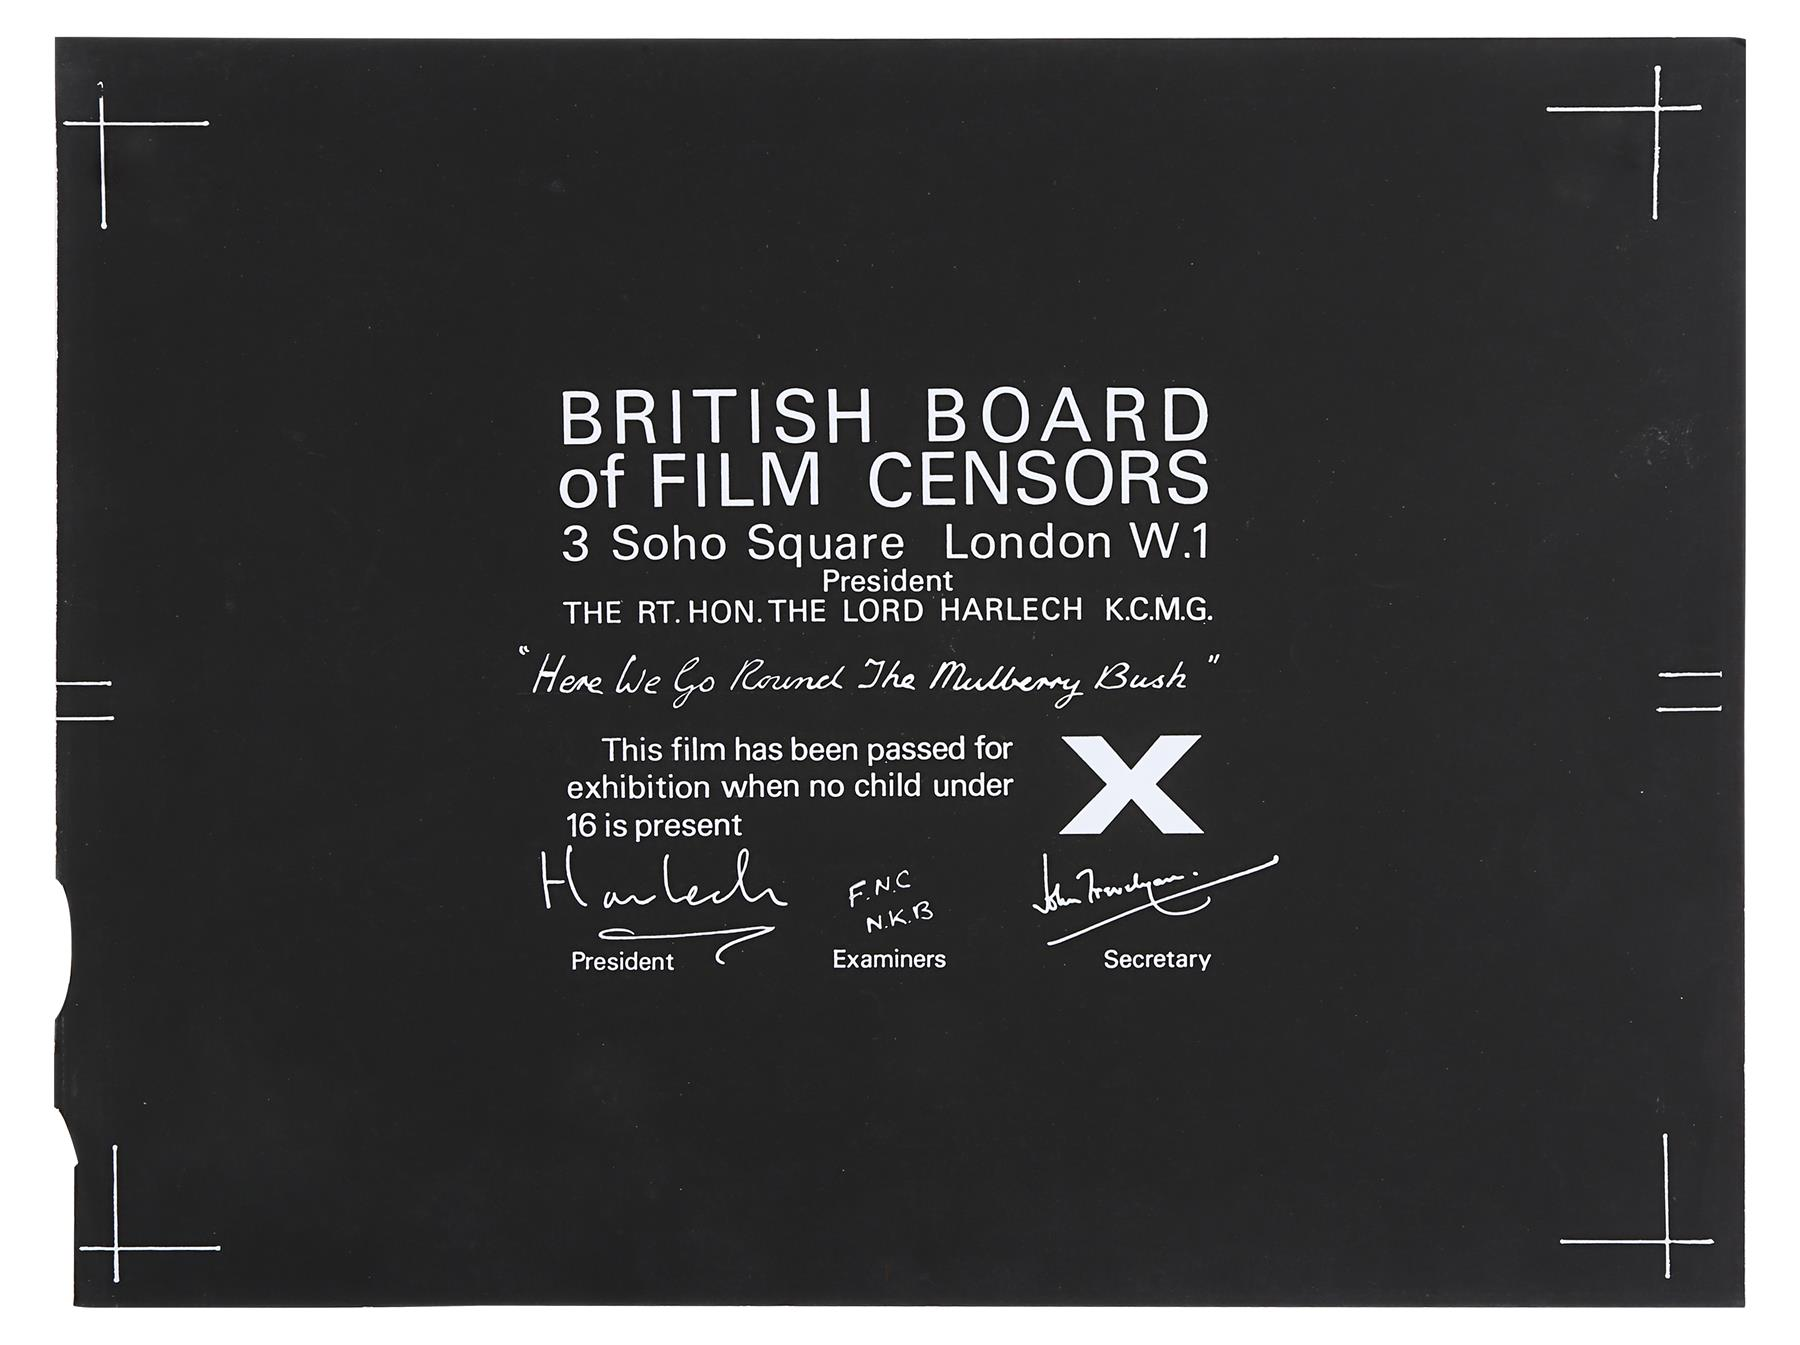 VARIOUS PRODUCTIONS - BBFC Certificates of British Classics - Image 5 of 6